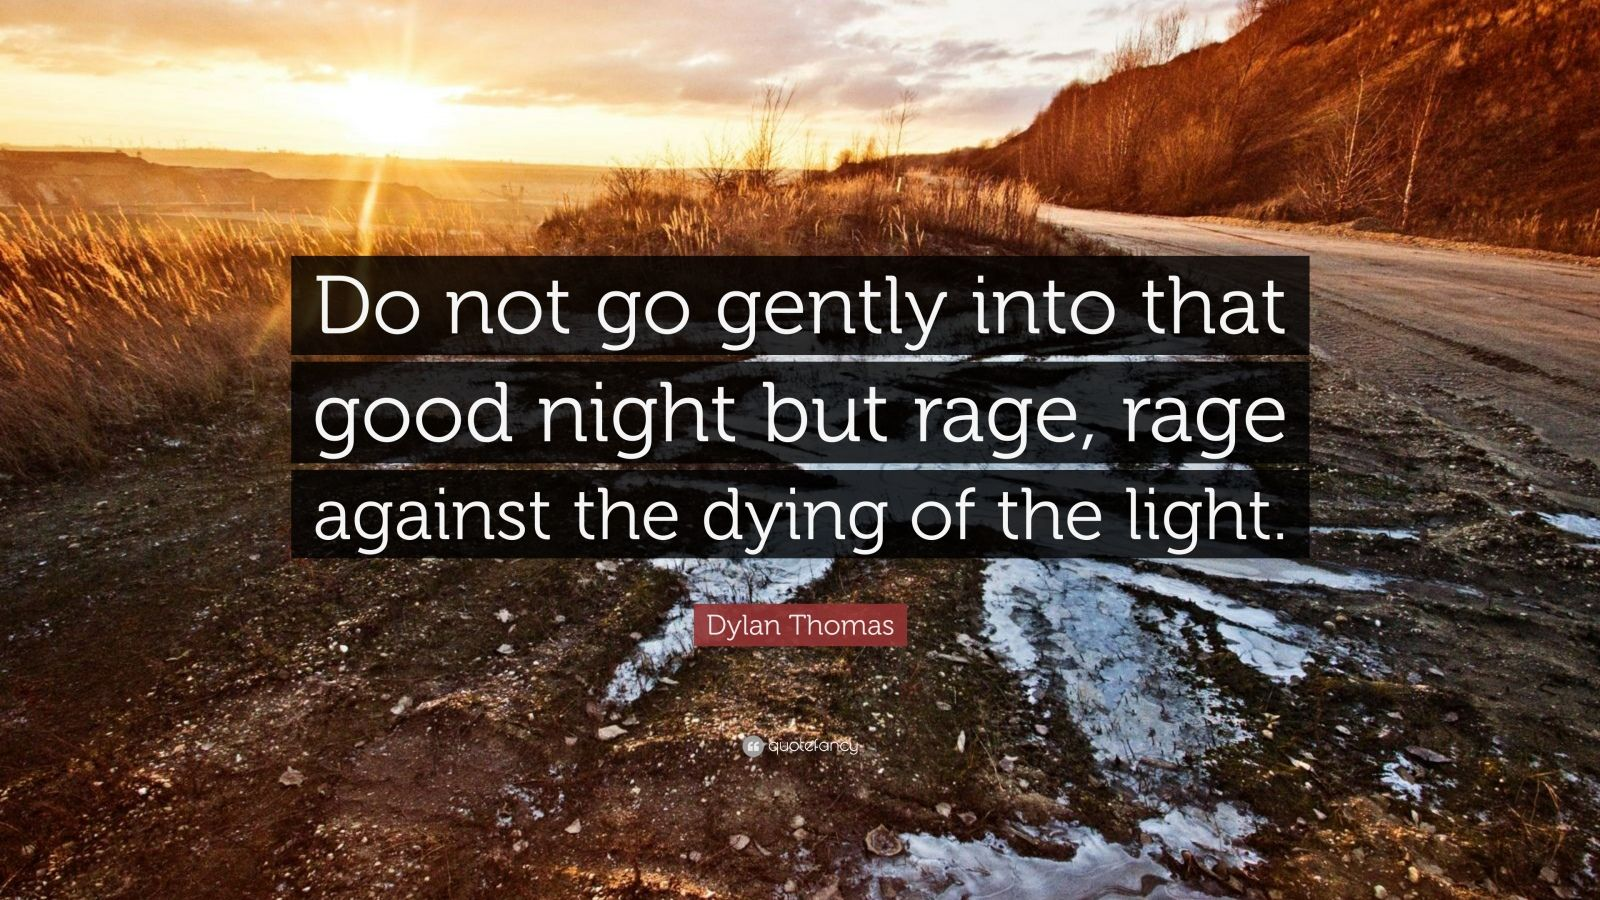 Rage Against Dying Light Dylan Thomas